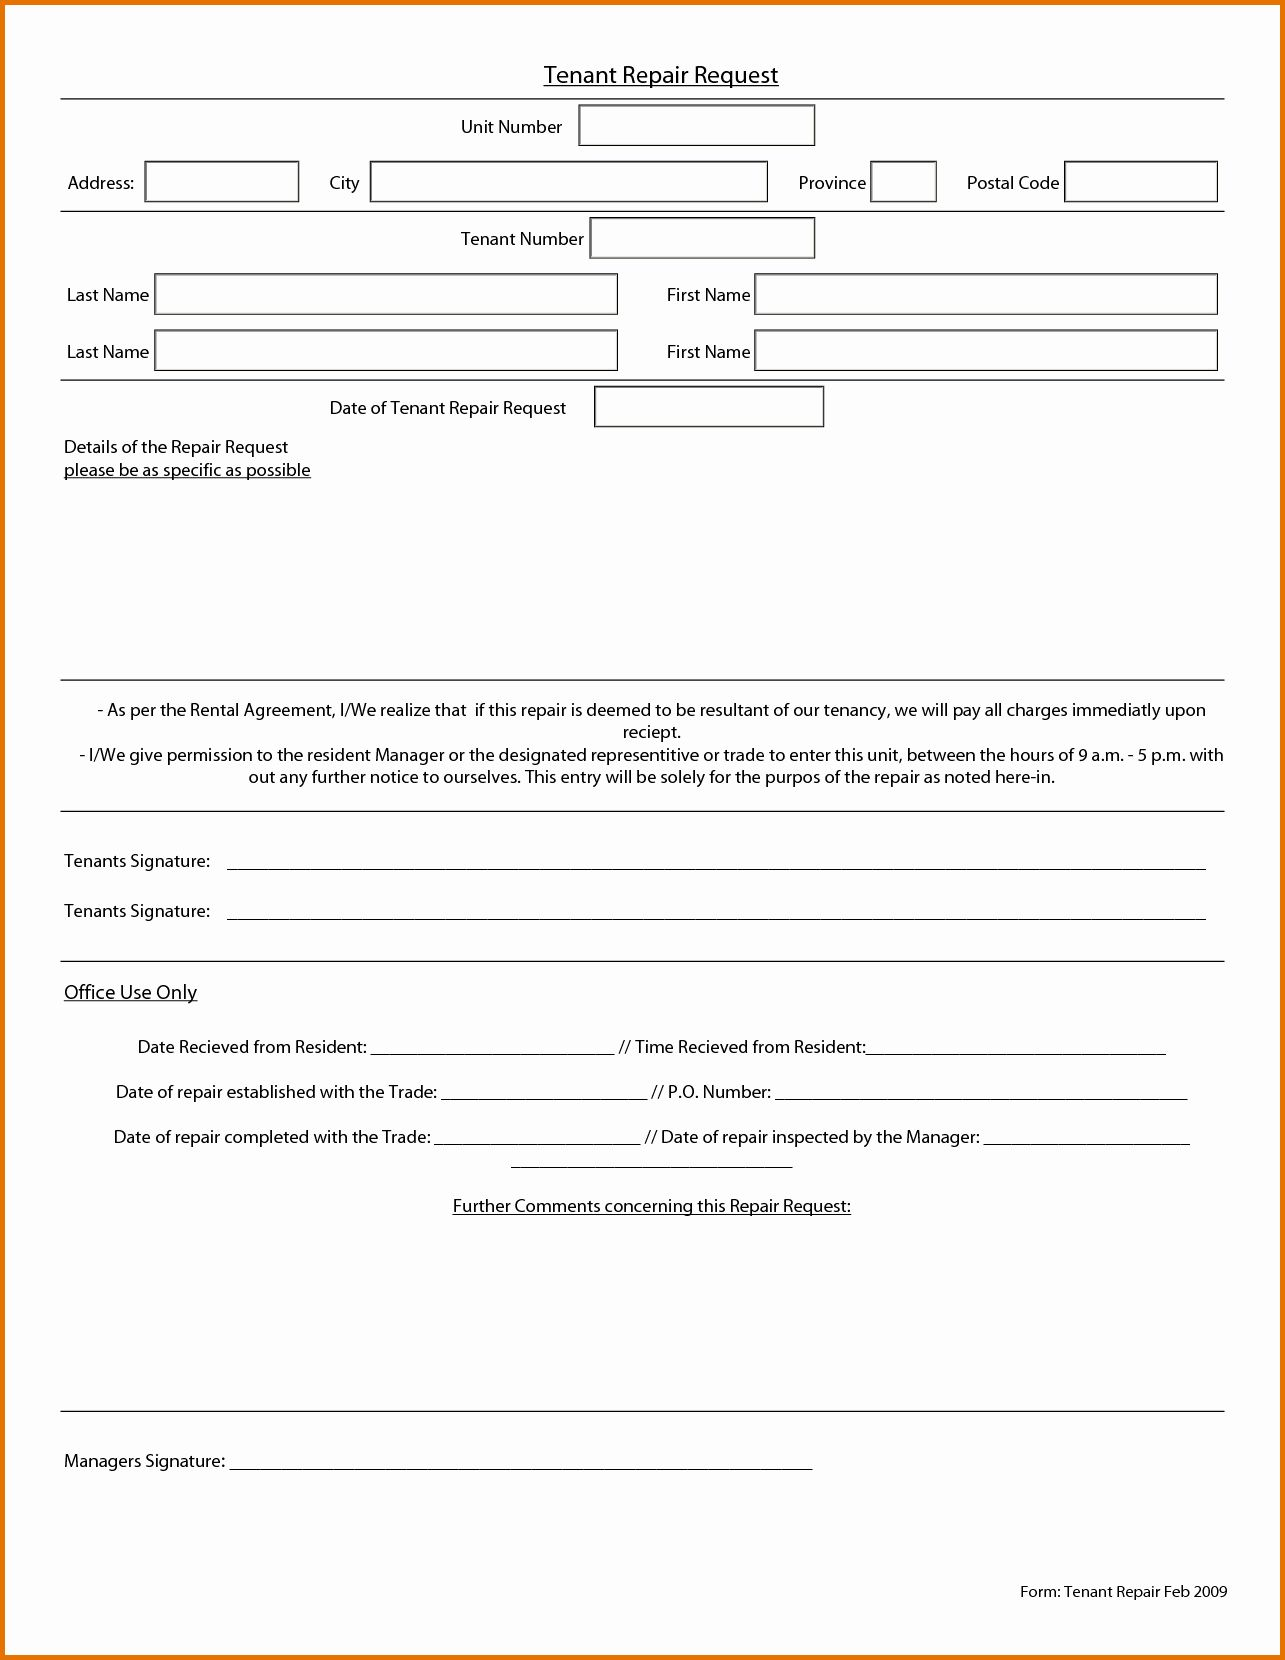 Tenant Maintenance Request Form Template Awesome Maintenance Request Form Template Templates Marketing Plan Template Standard Operating Procedure Template Maintenance service request form template